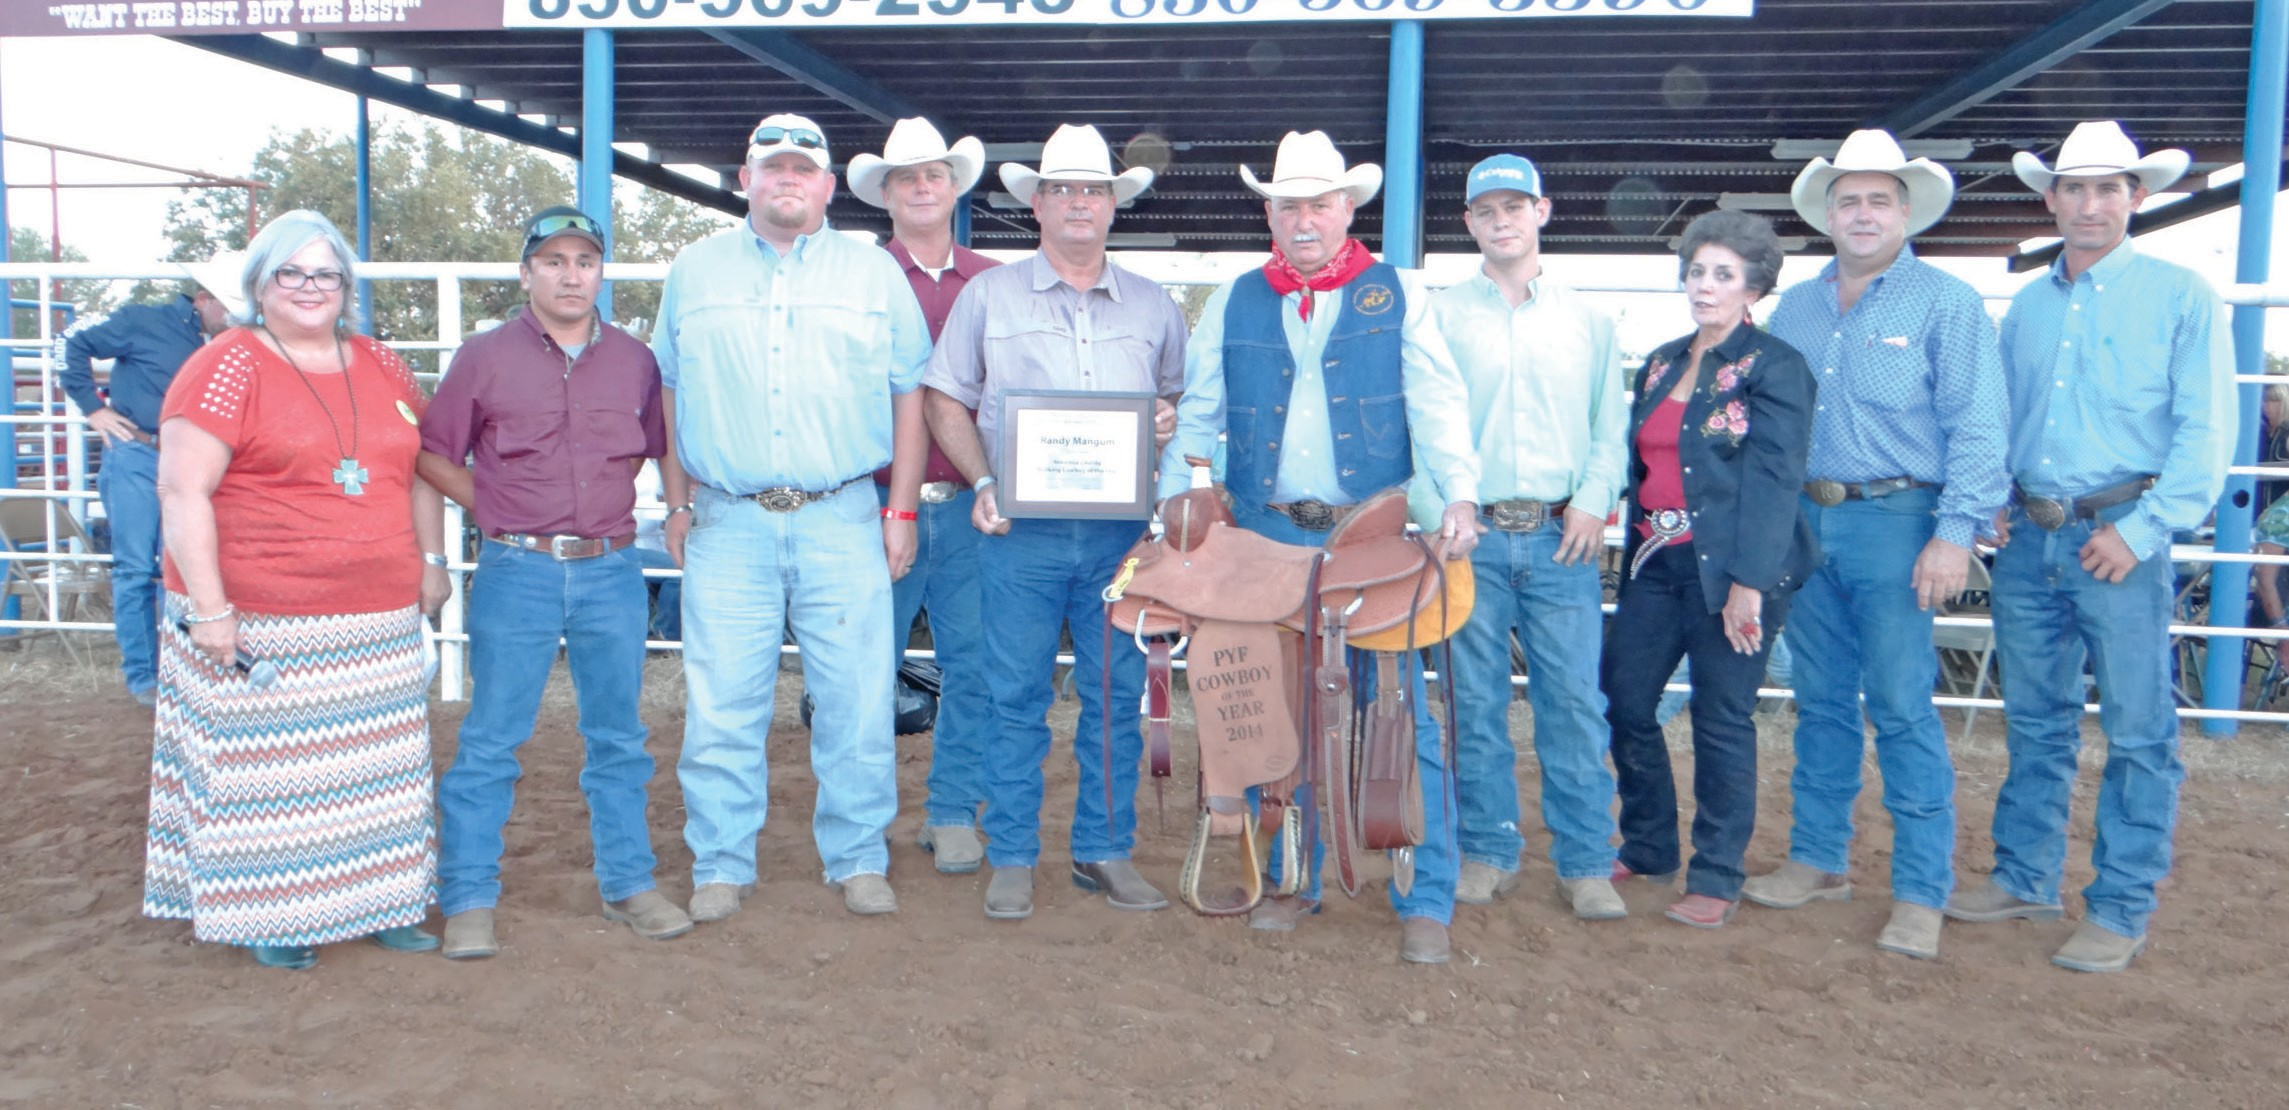 Randy Mangum (behind saddle) was named the 2014 Atascosa County Working Cowboy of the Year before the Pleasanton Young Farmers' rodeo on Friday, August 15. Mangum was given the saddle by the Young Farmers and it was donated by Atascosa Livestock Exchange. He also received a denim vest from the Pleasanton Chamber of Commerce, a bandana from Texas Moore, a bandana handmade rawhide slide from Roy Alonzo (2013 Cowboy of the Year) and a framed certificate from David McDaniel, 1997 Cowboy of the Year and donated by the Pleasanton Express. Left to right are Sue Brown, editor of the Pleasanton Express and emcee, Jorge Quiroga, Wade McBee and Chico Cox, Pleasanton Chamber of Commerce directors; David McDaniel, Randy Mangum, Gus Wheeler (Atascosa Livestock Exchange), Texas Moore, Randy Rice (Young Farmer) and Dustin Neal, Pleasanton Young Farmers president.